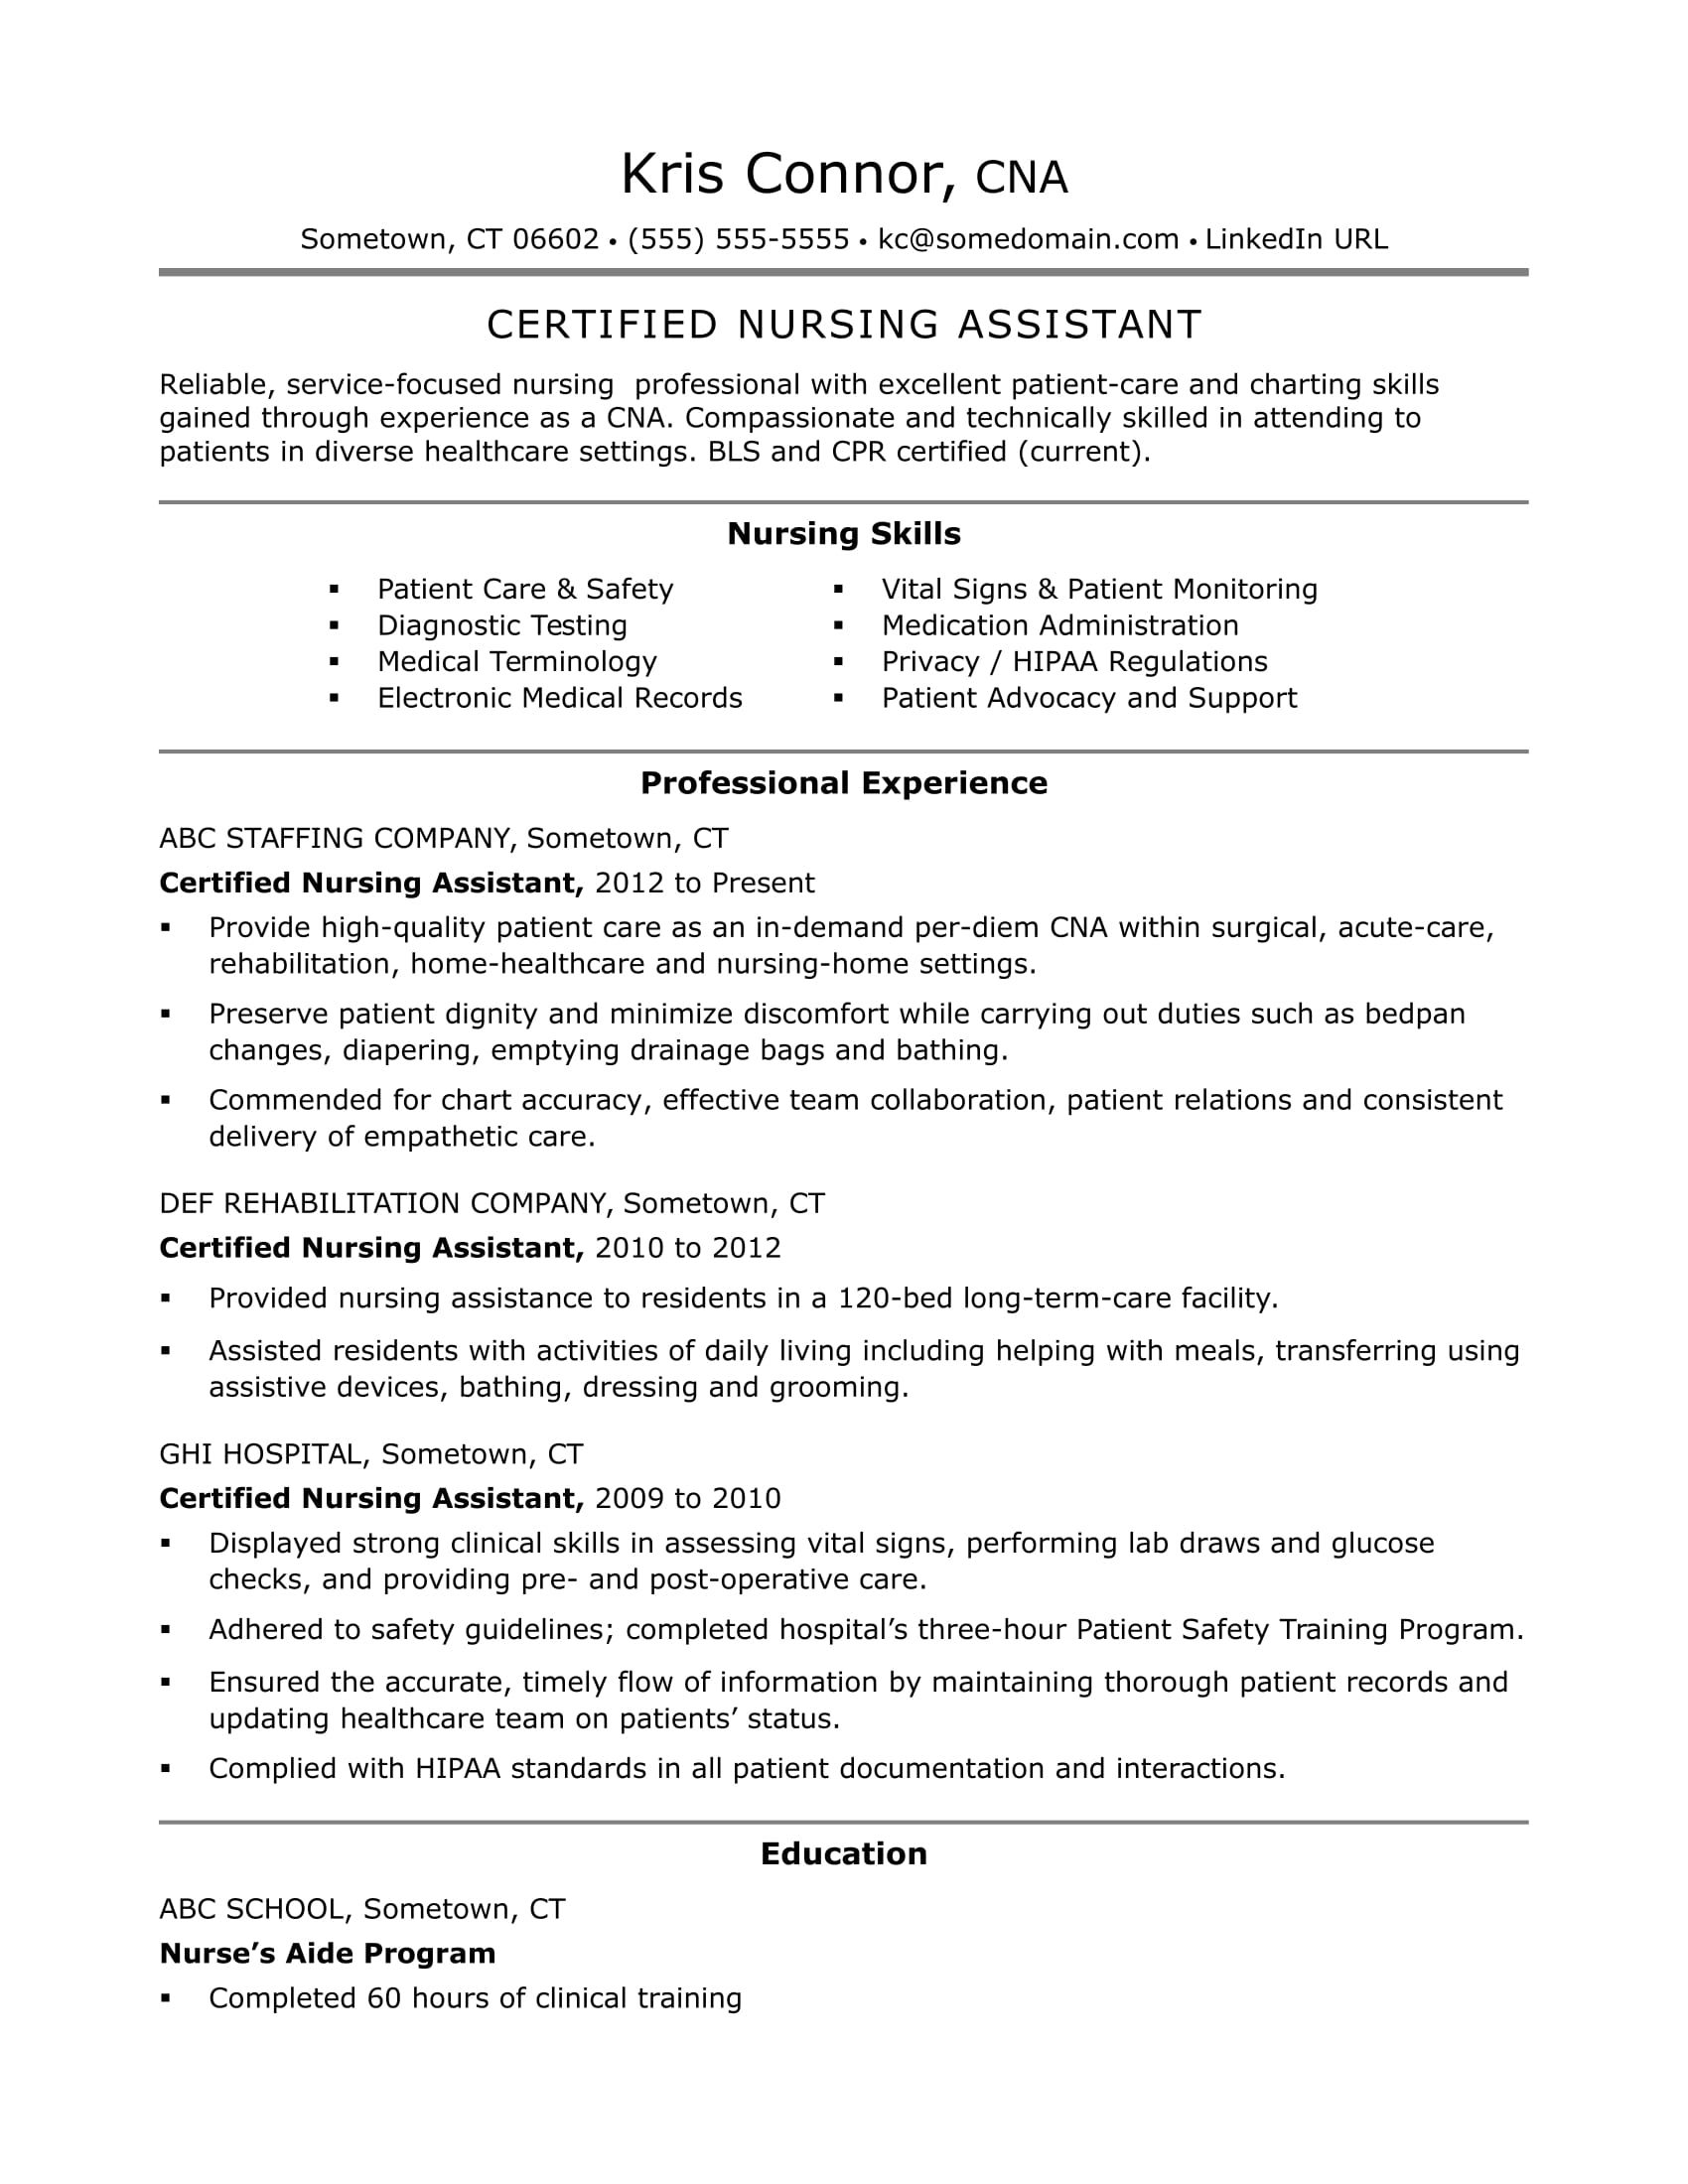 Amazing CNA Resume Example To Resume For Cna Position